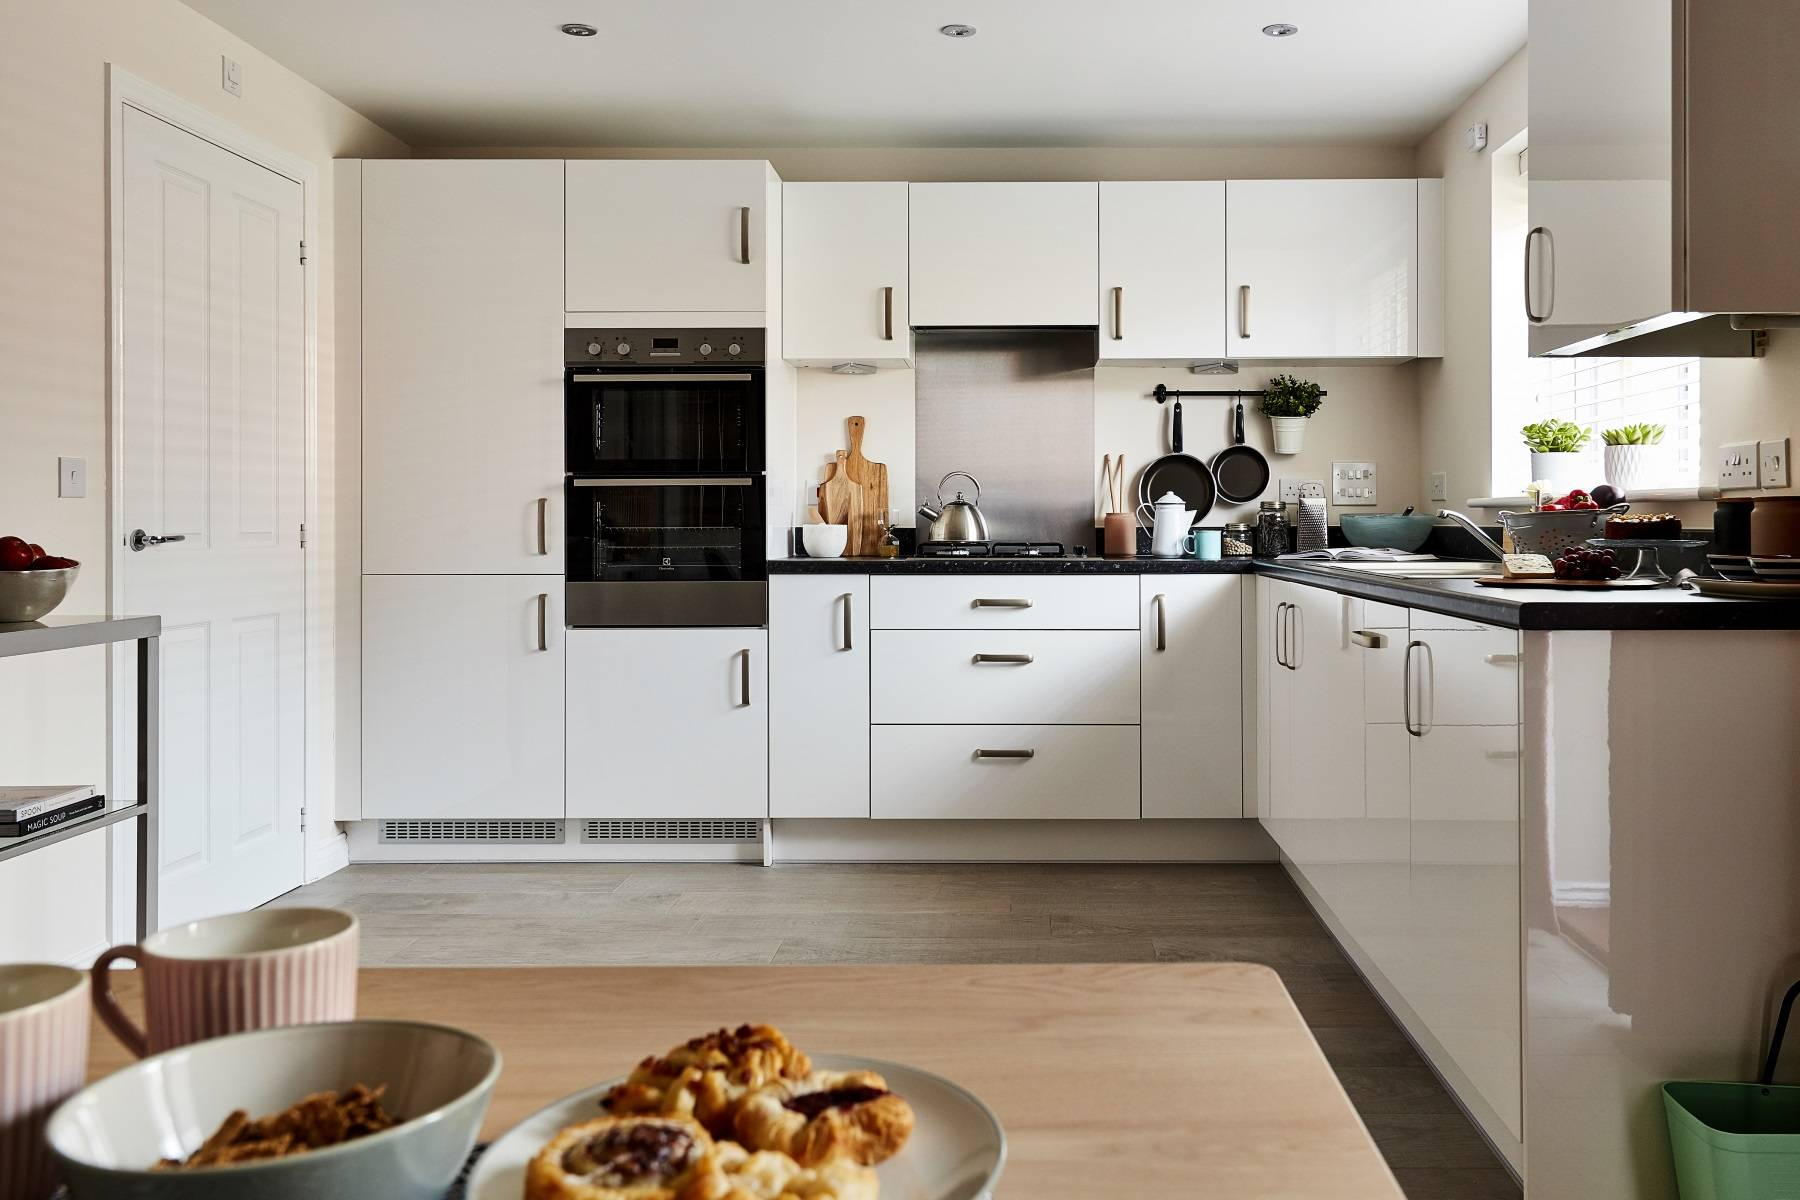 TW Exeter - Chy An Dowr - Midford example kitchen